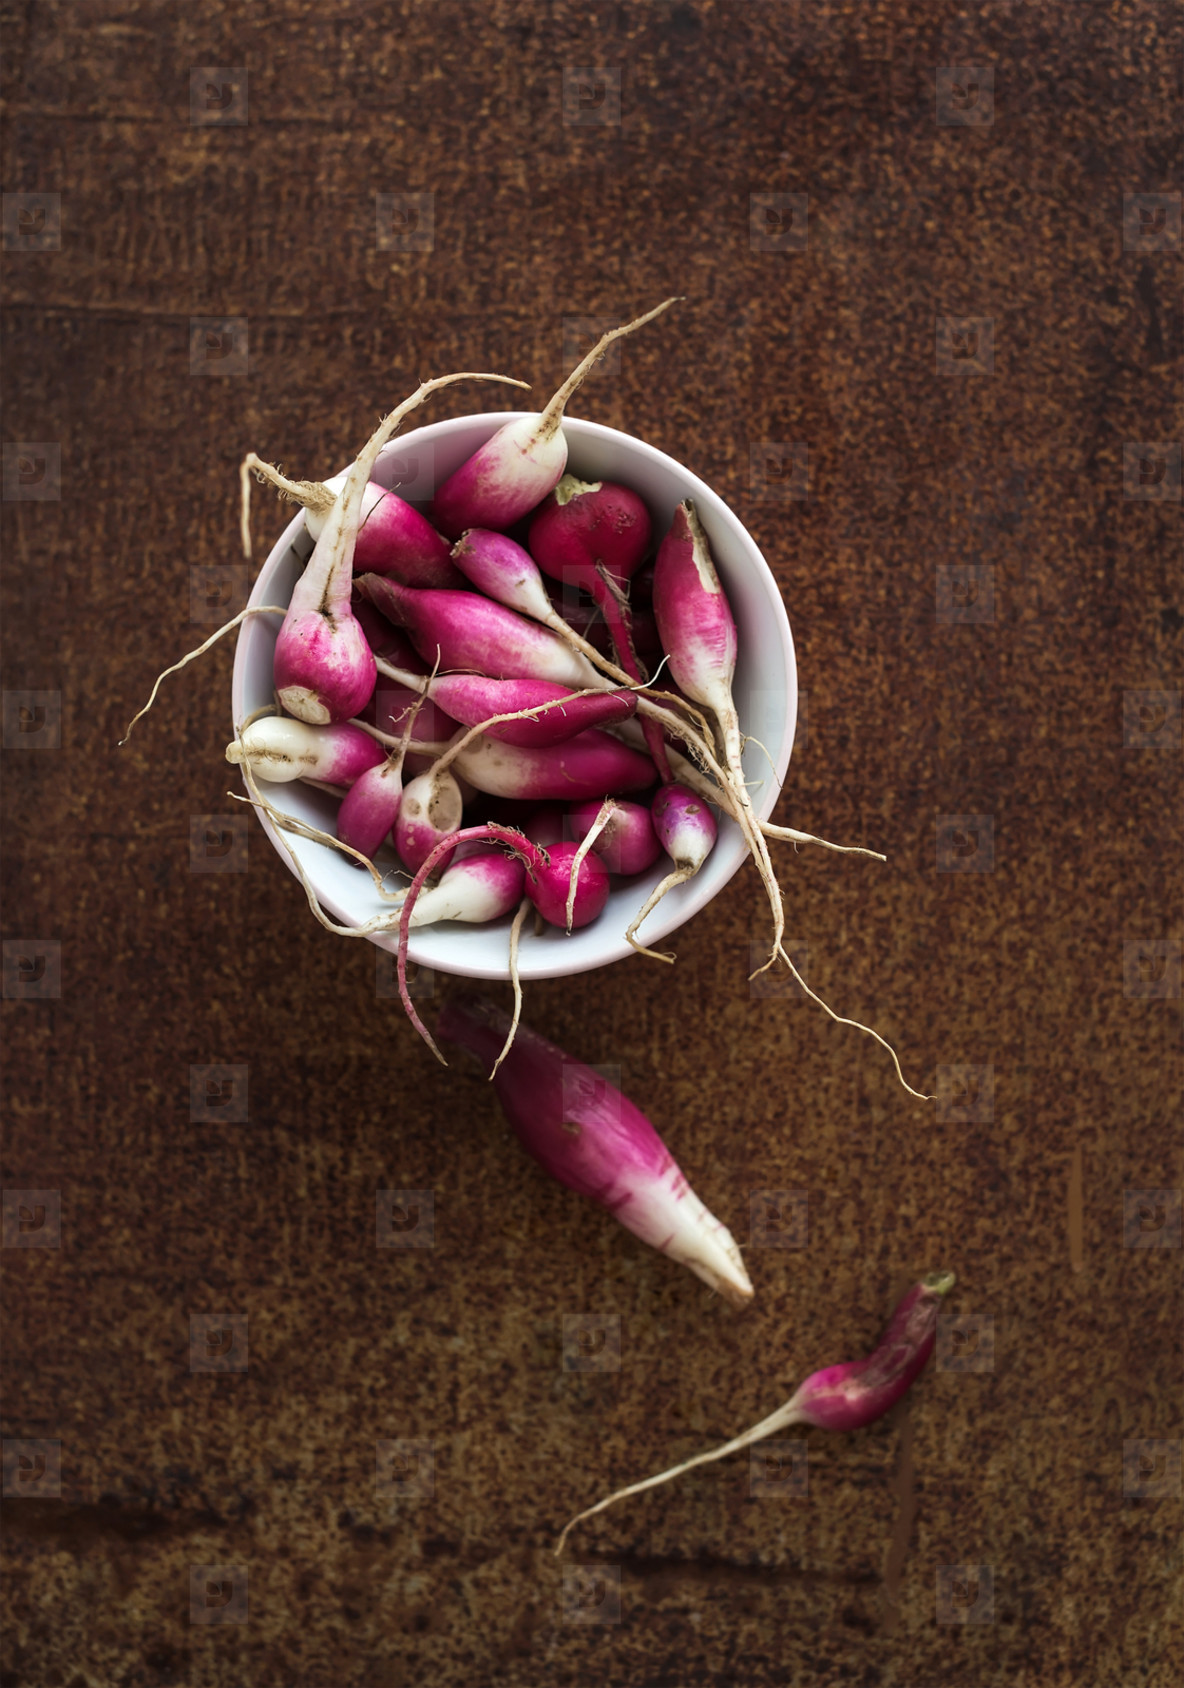 Bowl of fresh garden radishes on rusty grunge metal surface  top view